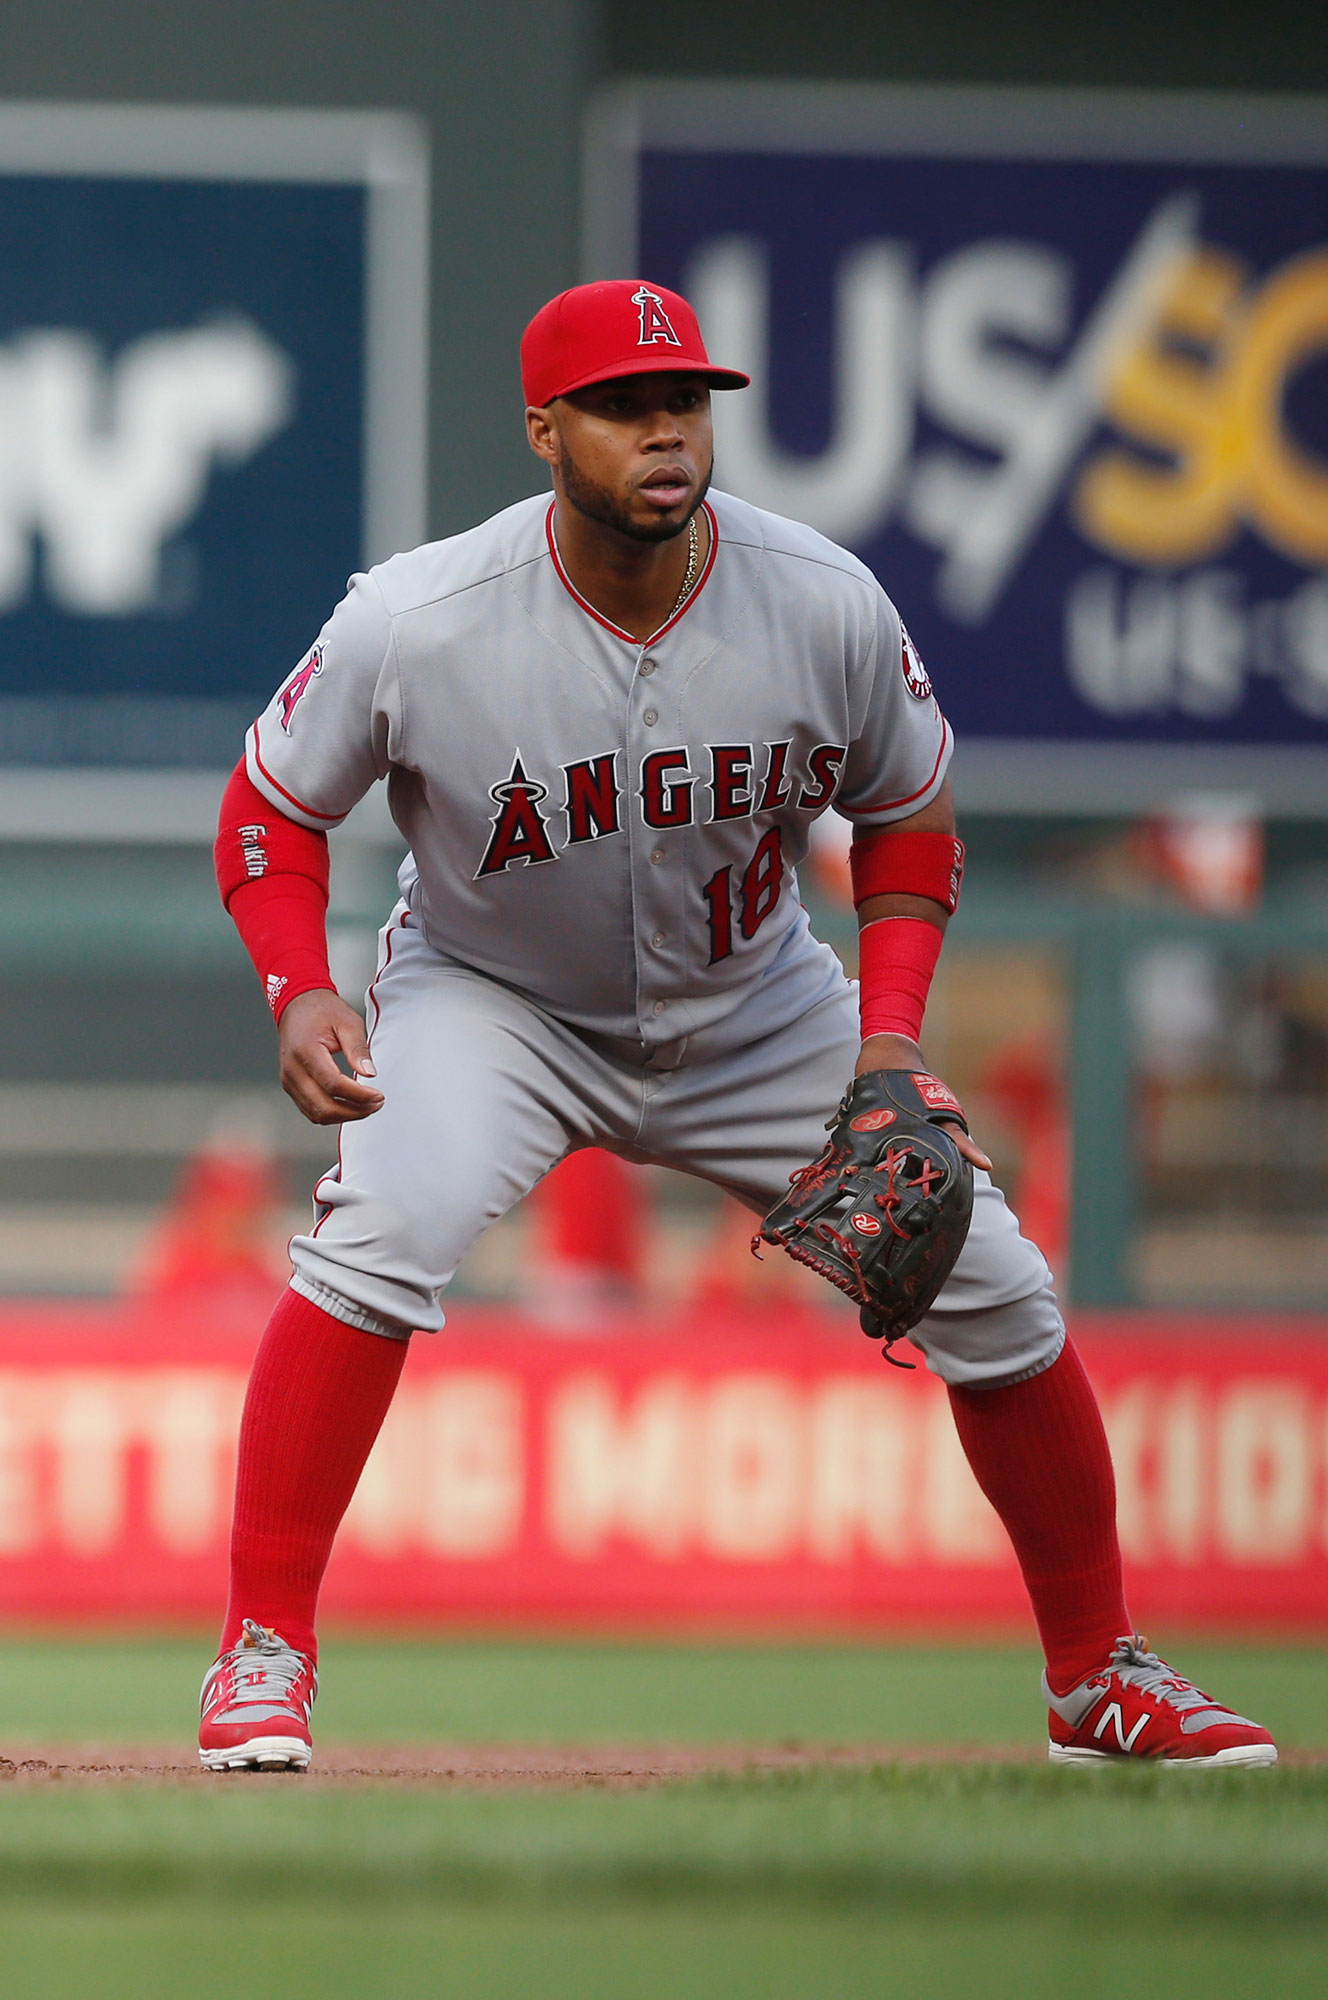 <div class='meta'><div class='origin-logo' data-origin='none'></div><span class='caption-text' data-credit='Jim Mone/AP Photo'>Luis Valbuena, a former MLB player who competed for 11 seasons, died in a car crash in Venezuela at age 33.</span></div>